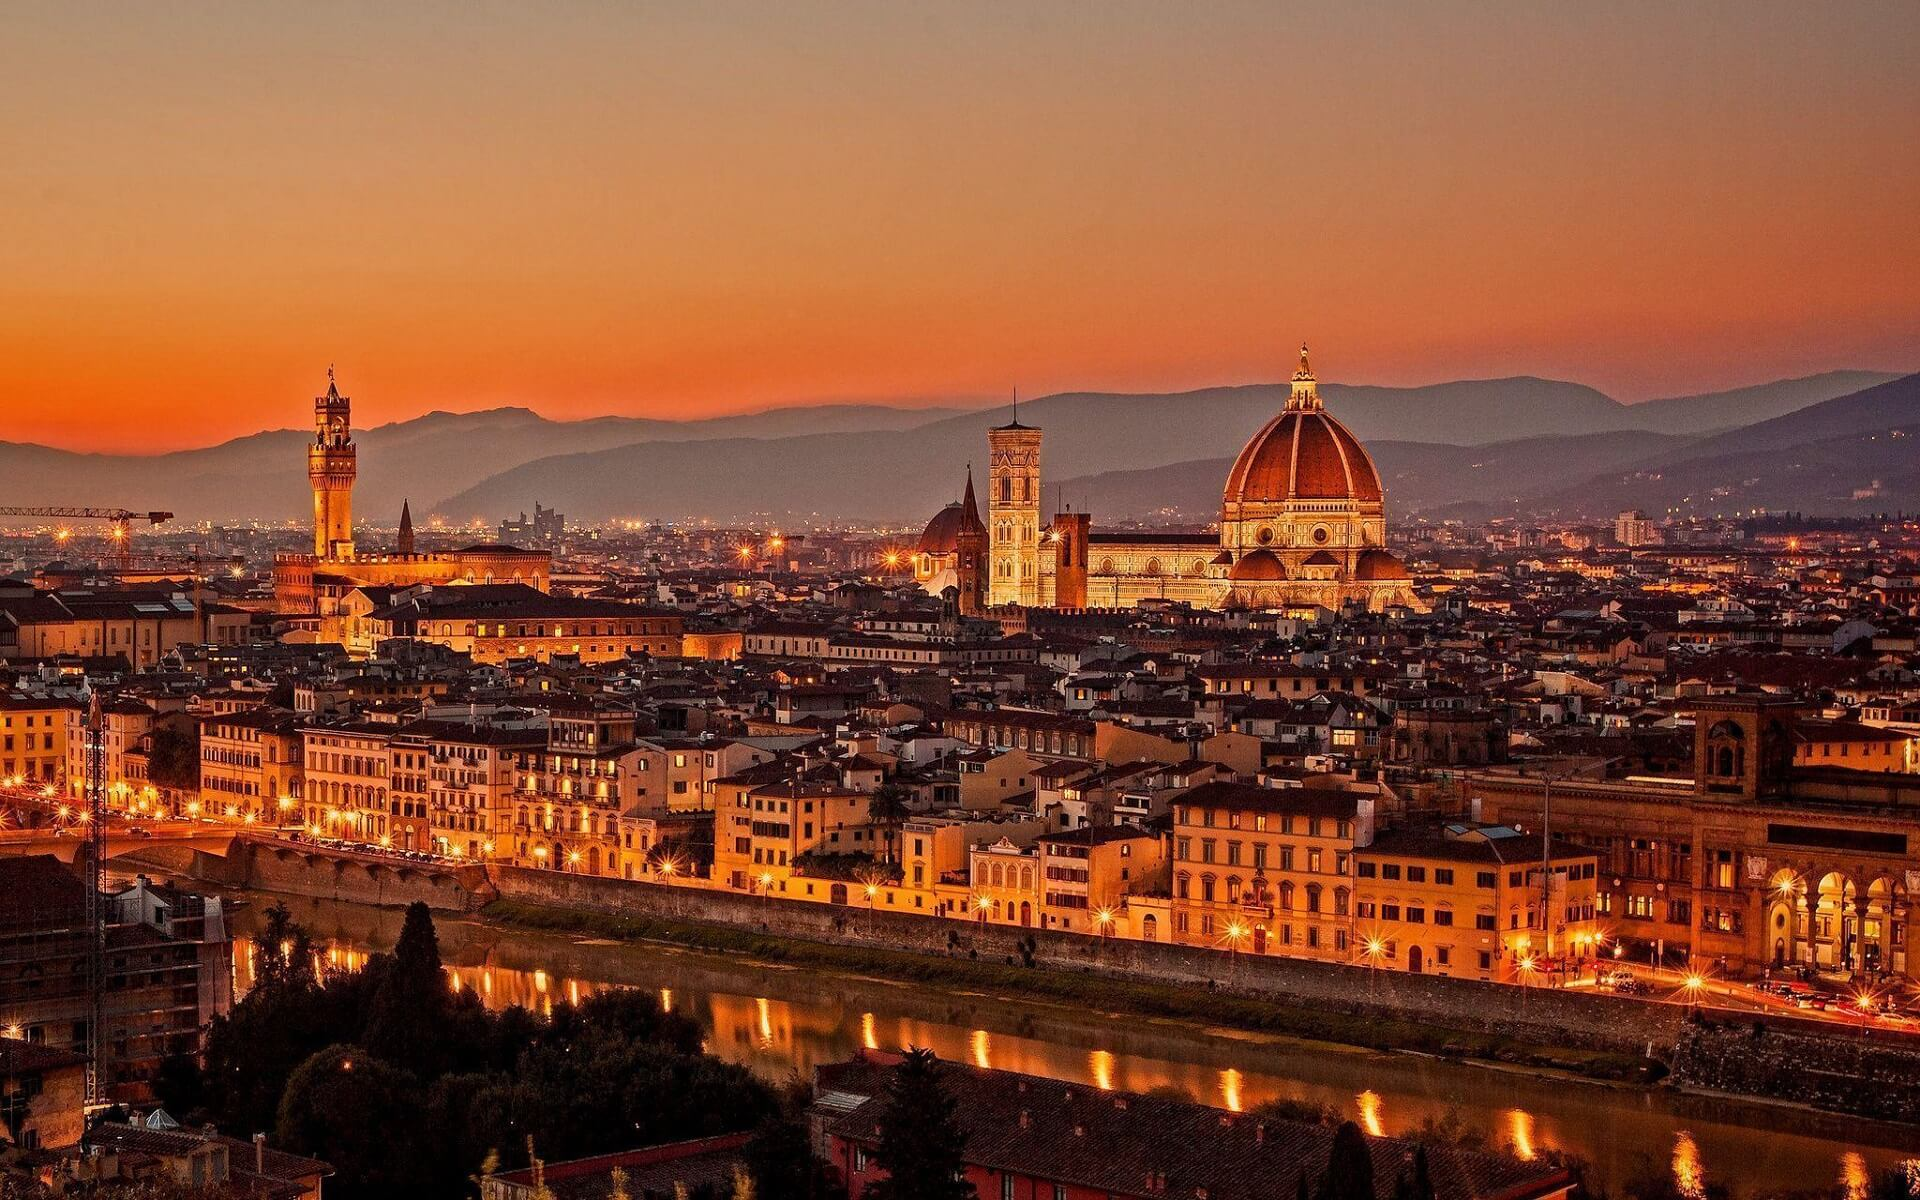 Florence - Cities Where Art Lives